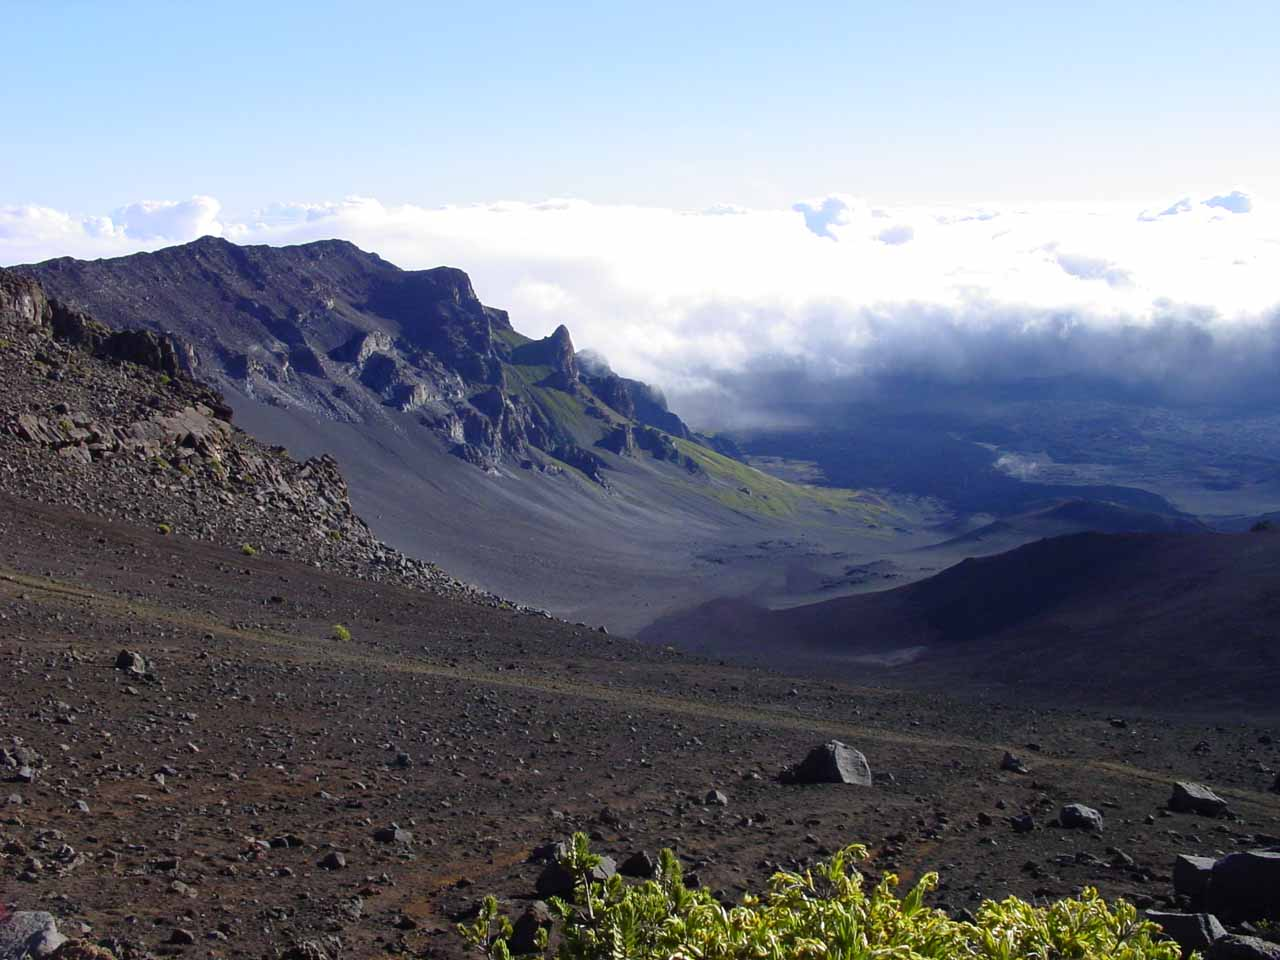 If hiking's your thing, then consider Haleakala National Park's more famous section at the top of Haleakala Volcano, where you can hike into the craters themselves on the Sliding Sands Trail